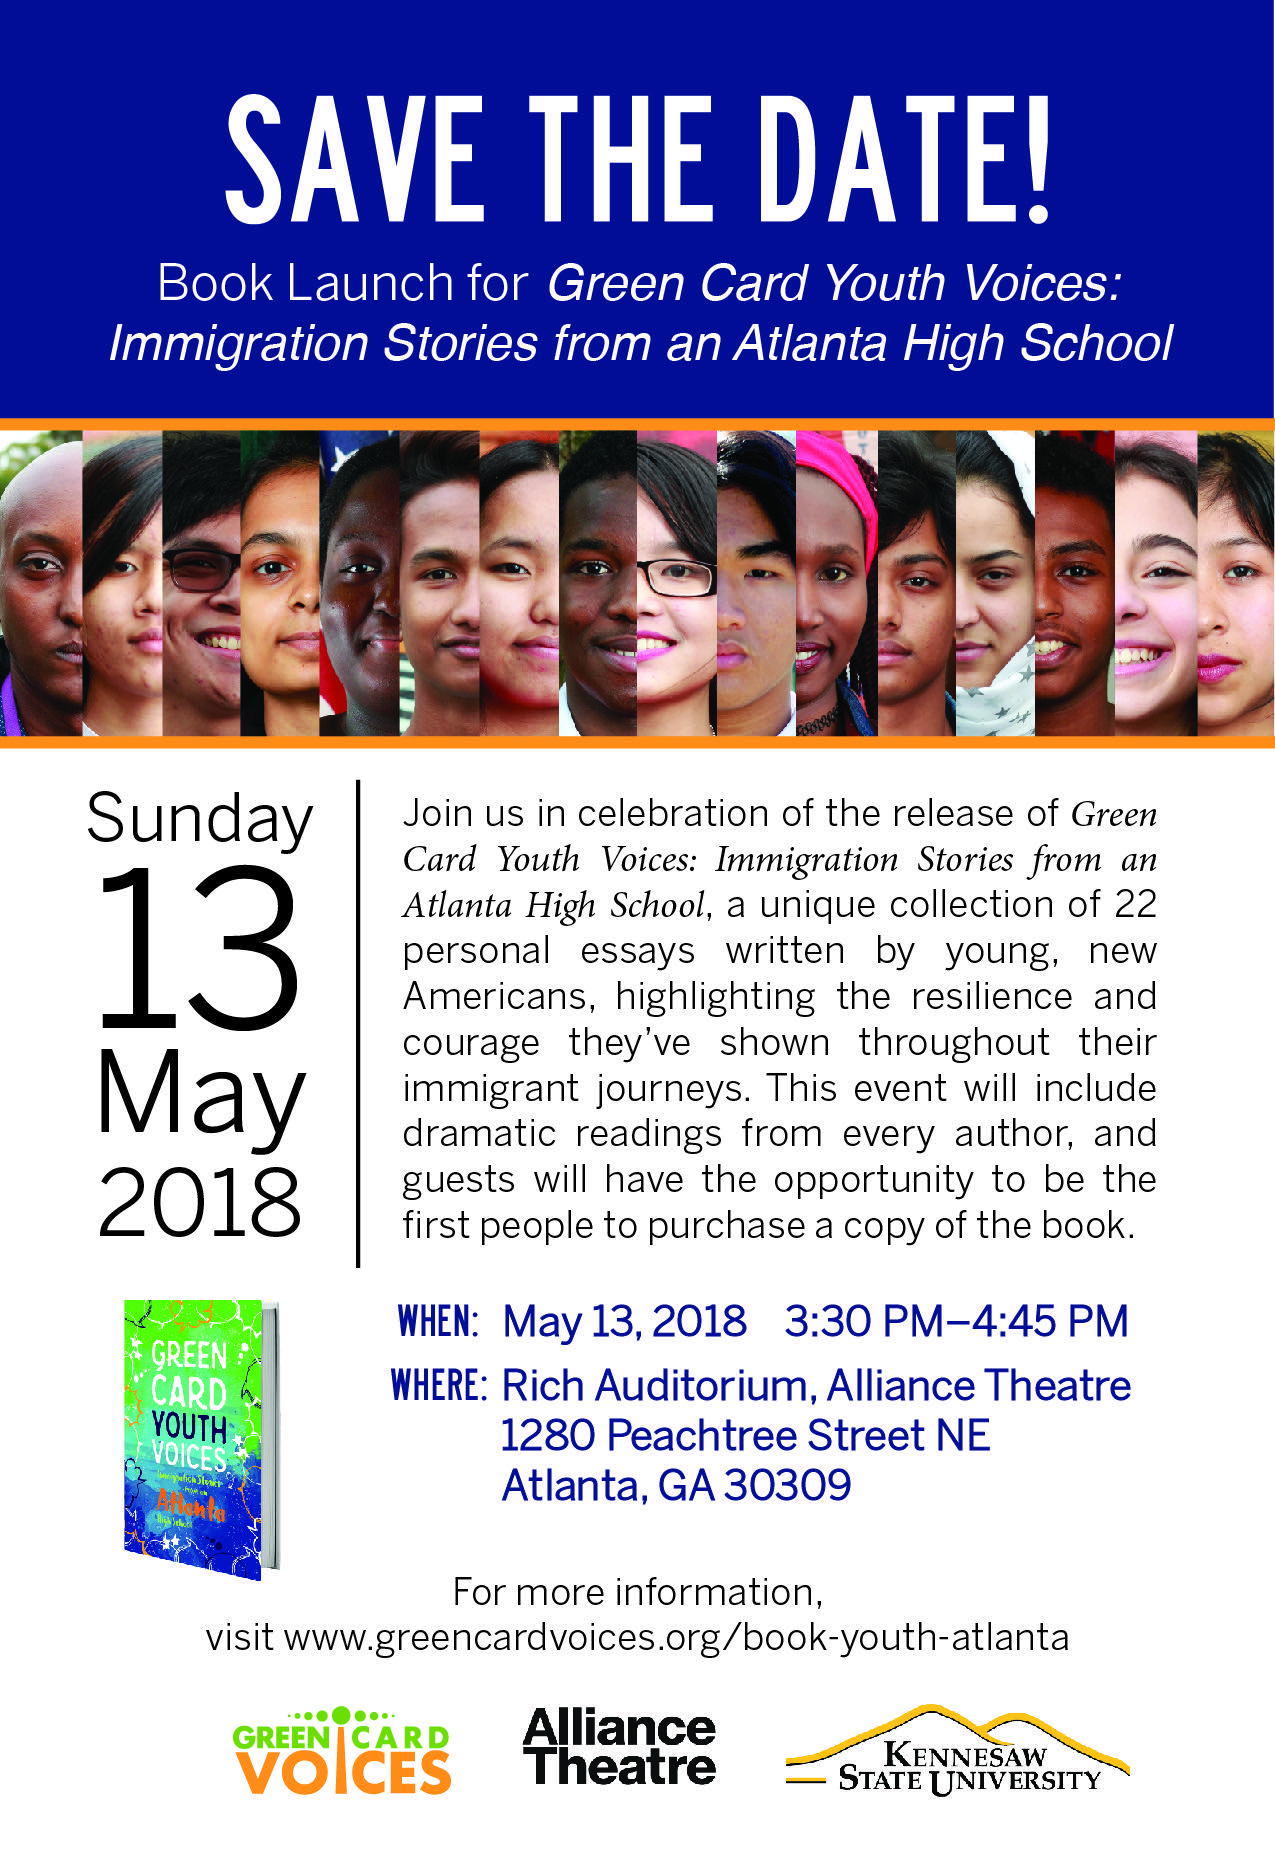 Green Card Youth Voices: Immigration Stories from an Atlanta High School Official Launch Event Flyer